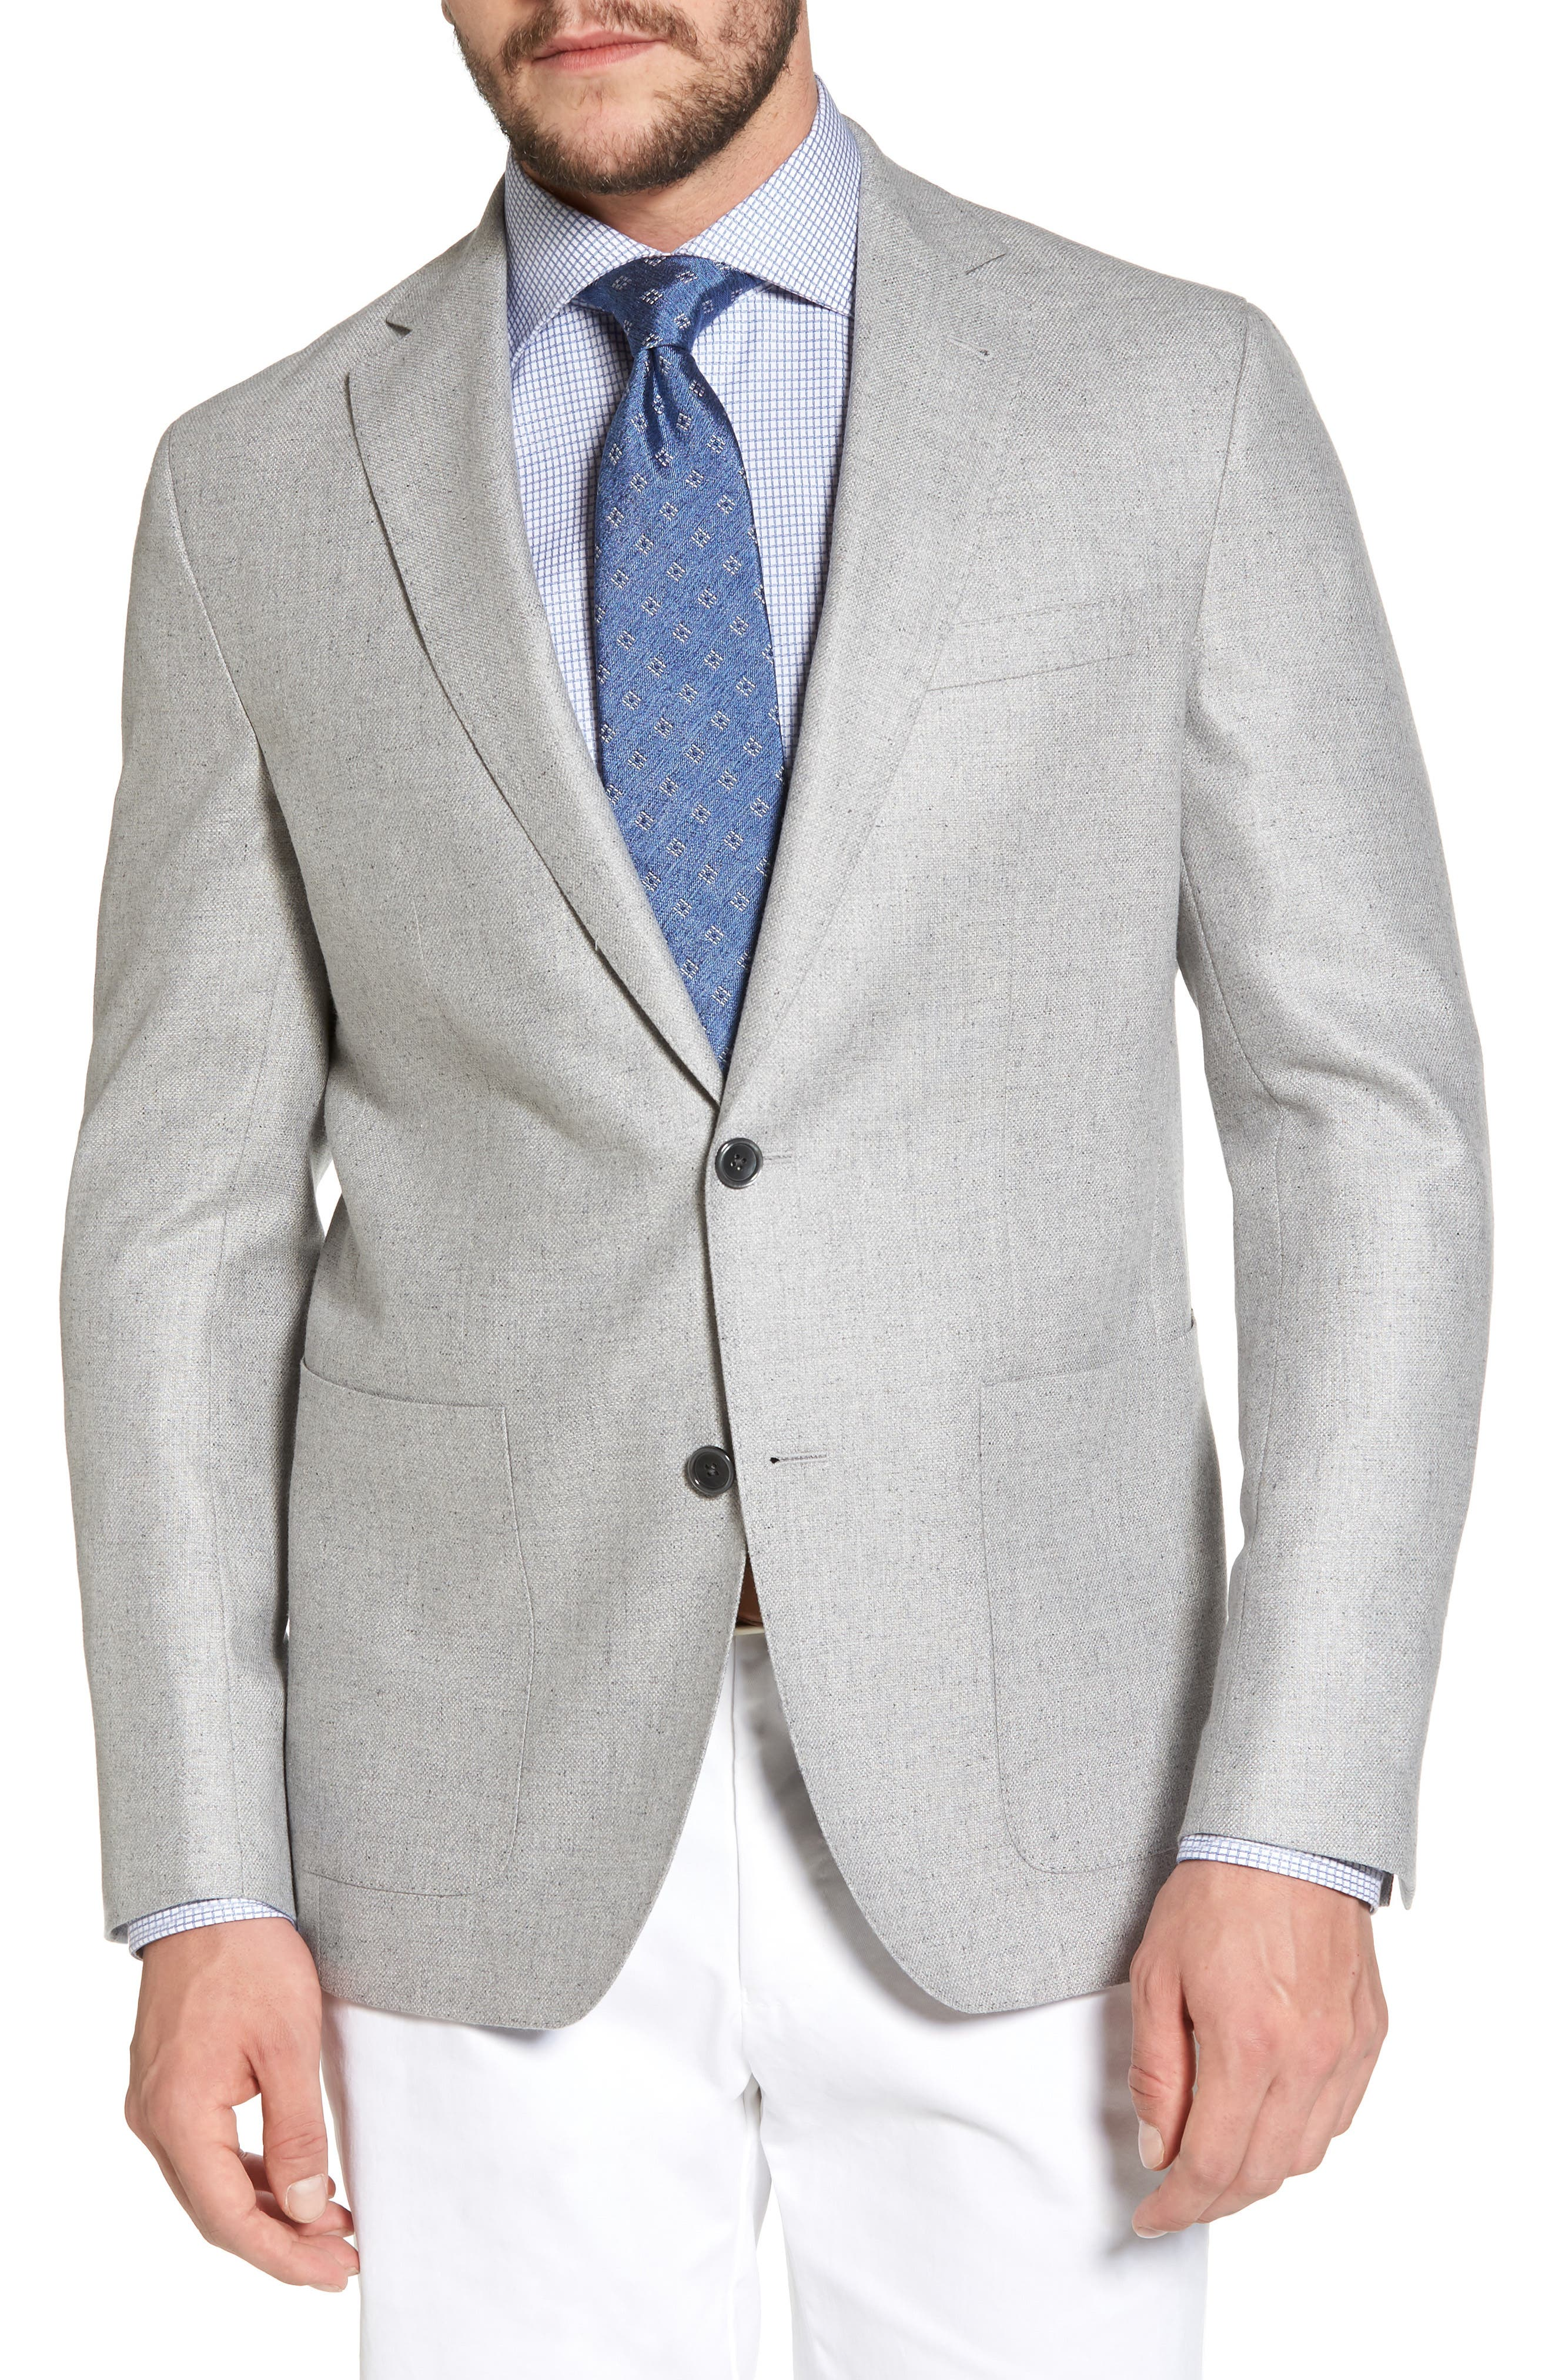 Arnold Classic Fit Wool & Silk Blazer,                             Main thumbnail 1, color,                             Light Grey